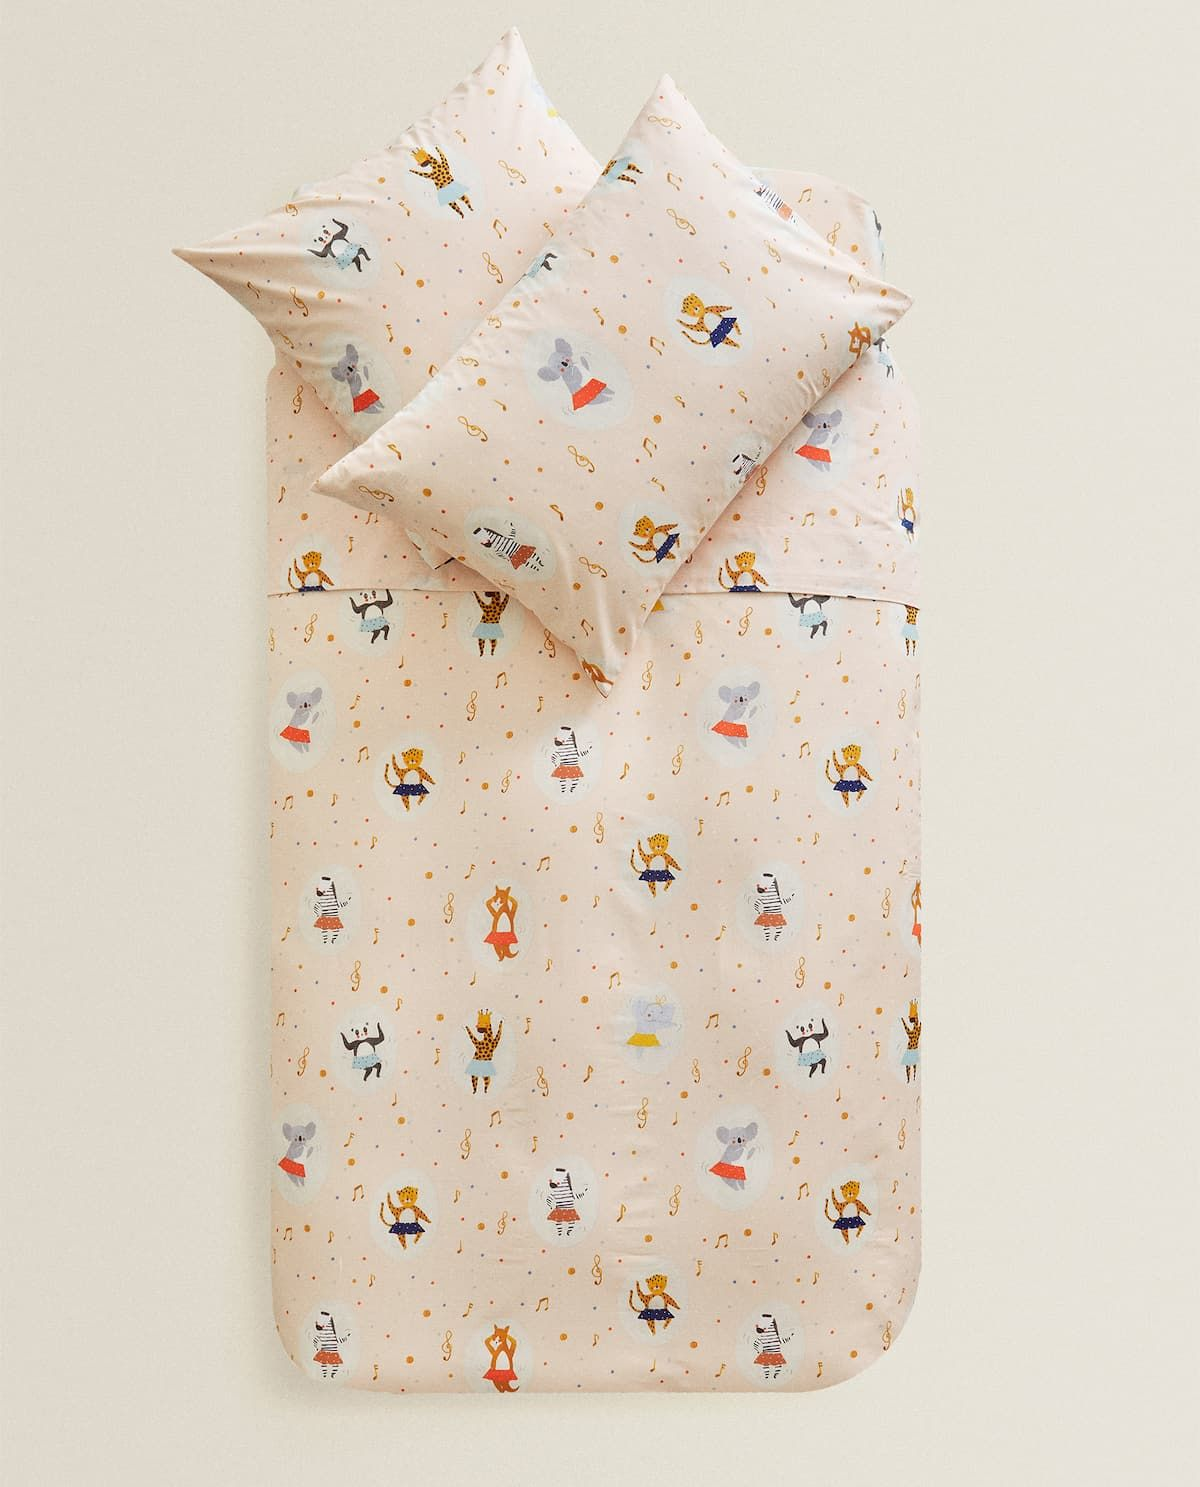 Funda Nórdica Estampado Animalitos Duvet Covers Zara Home Kids Bedroom